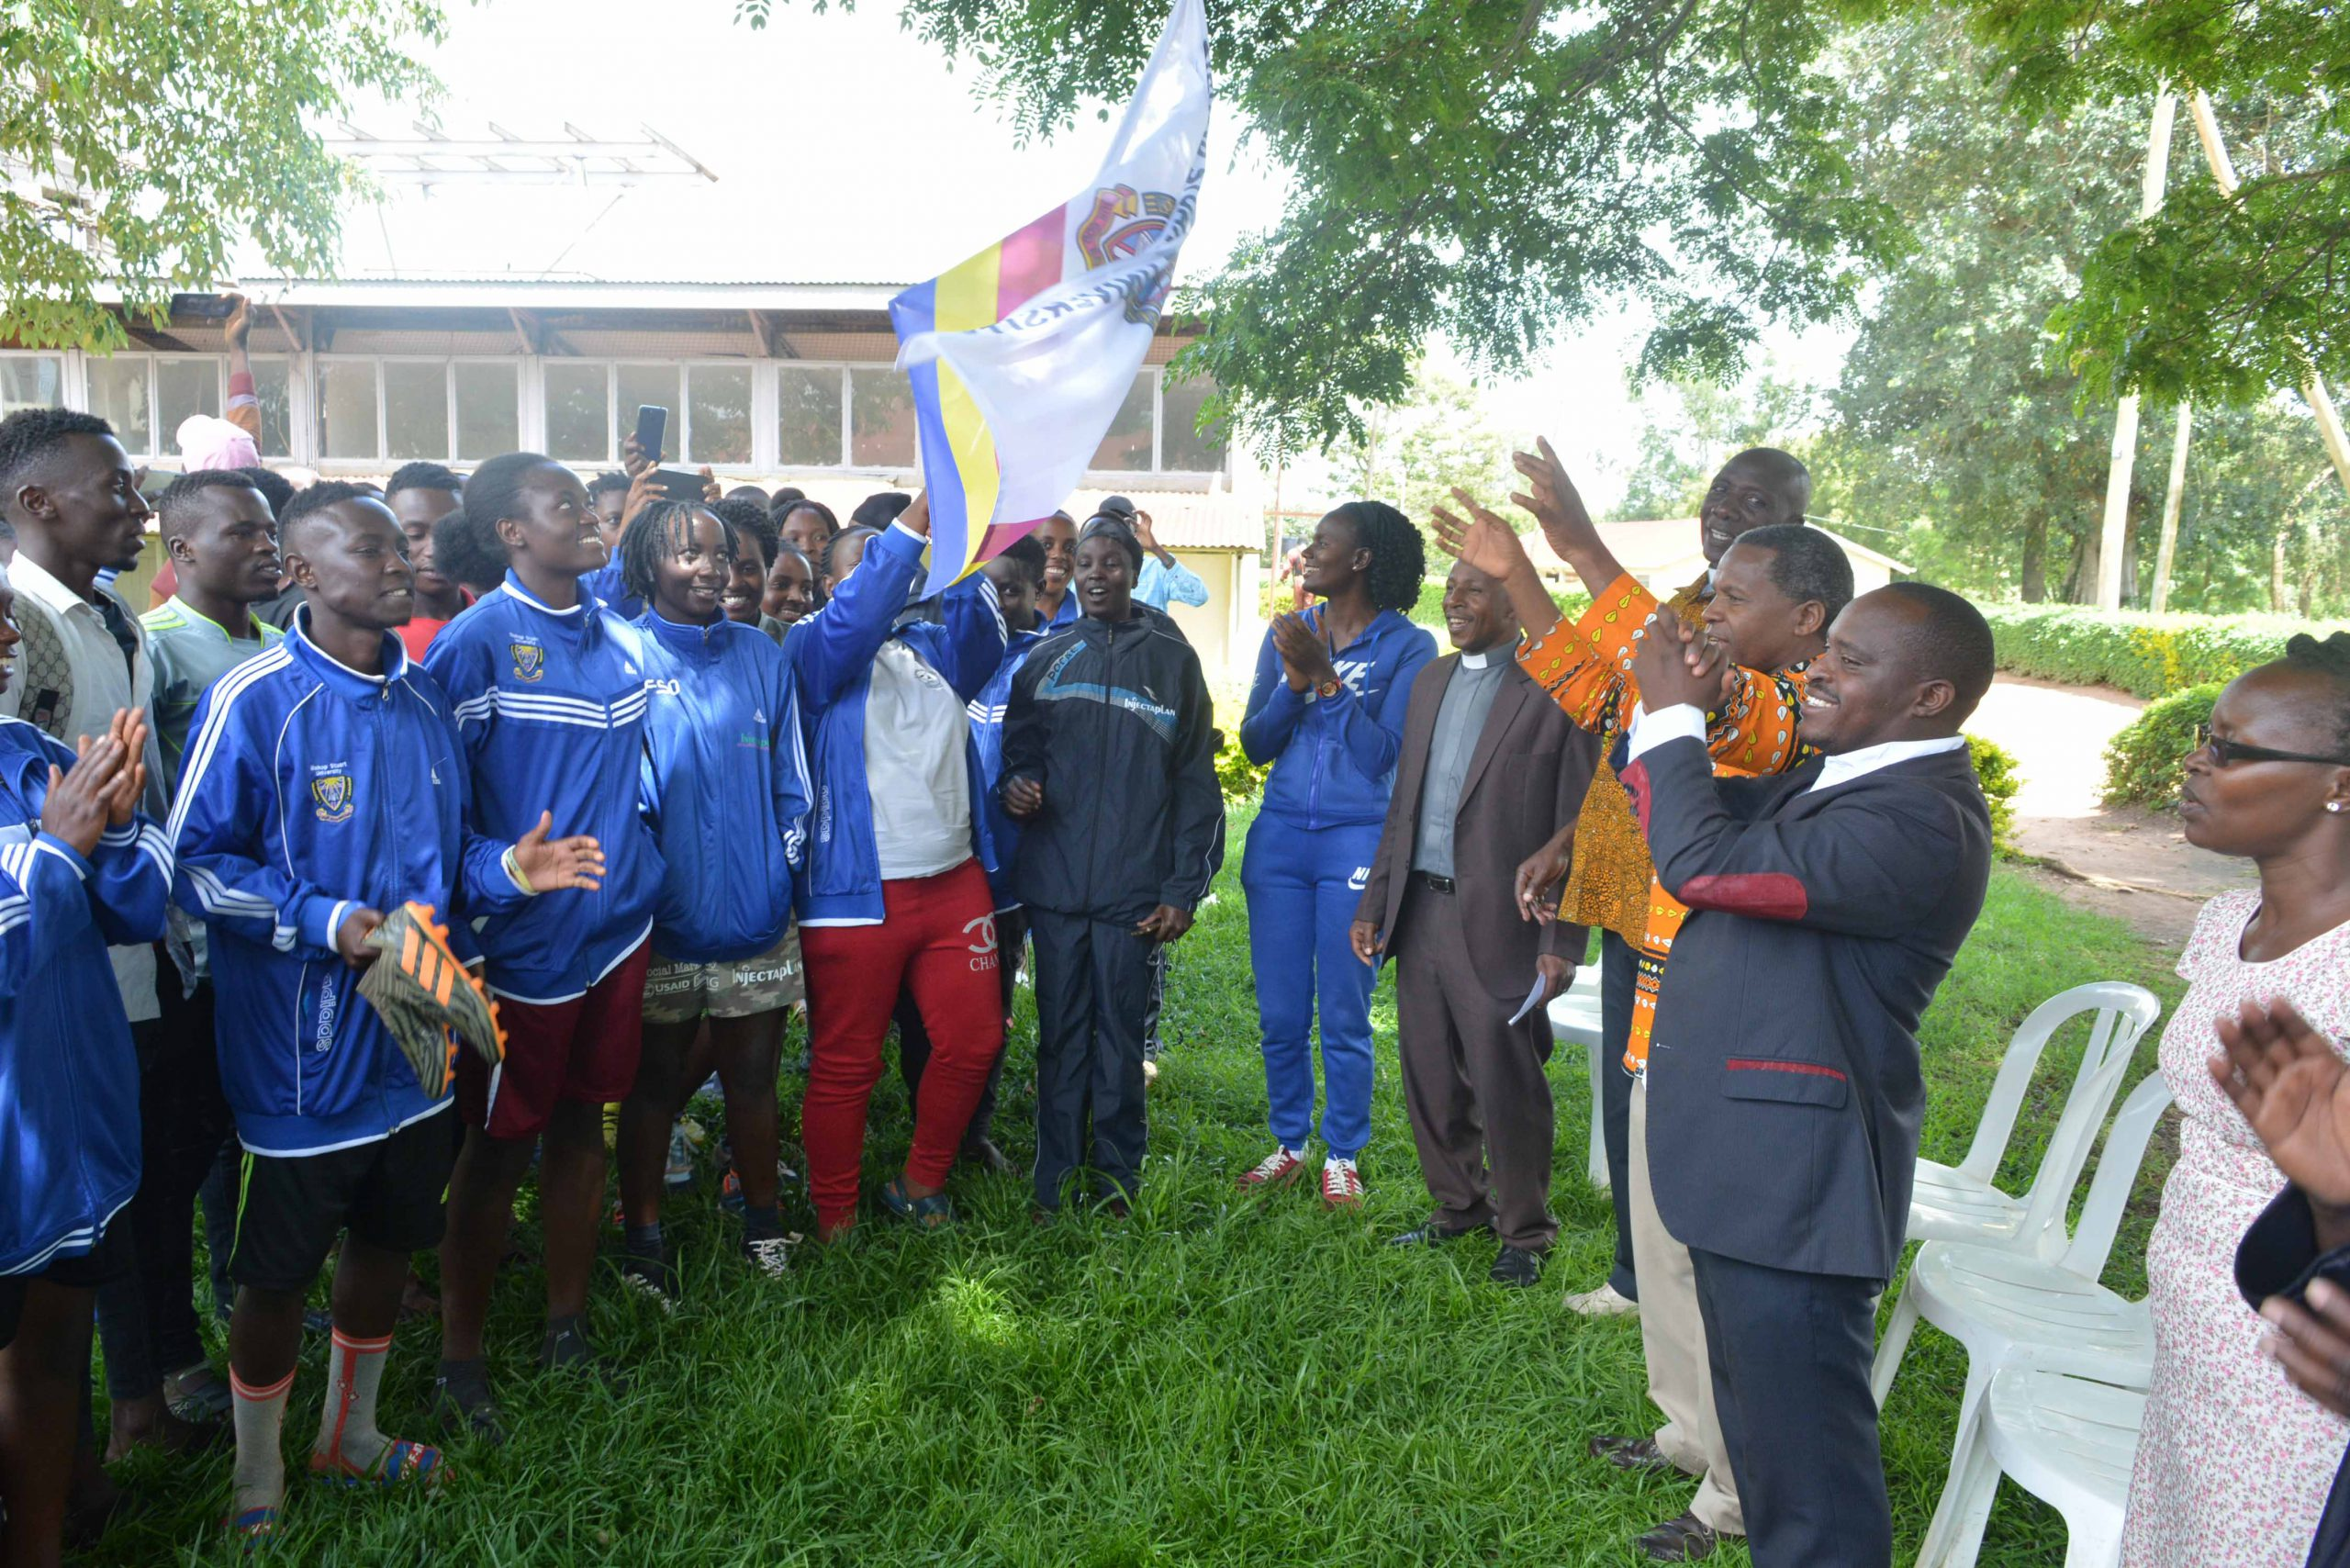 University Sports students team flagged off for 18th Inter-University games competition